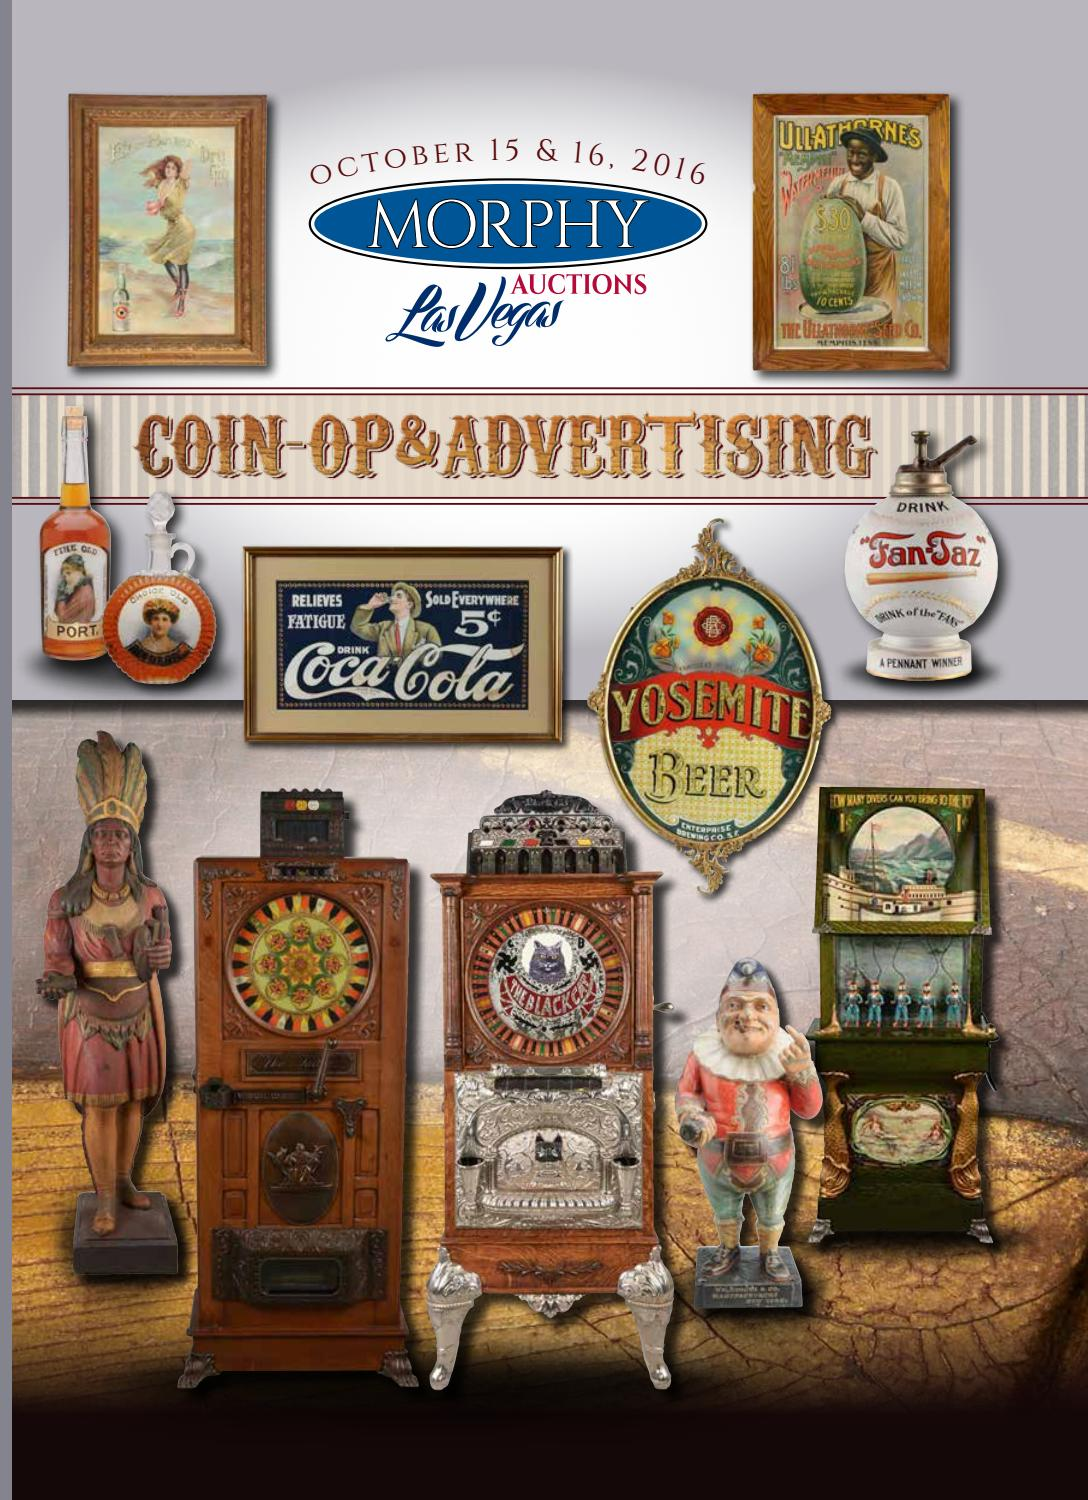 2016 October 15-16 Coin-Op & Advertising by Morphy Auctions